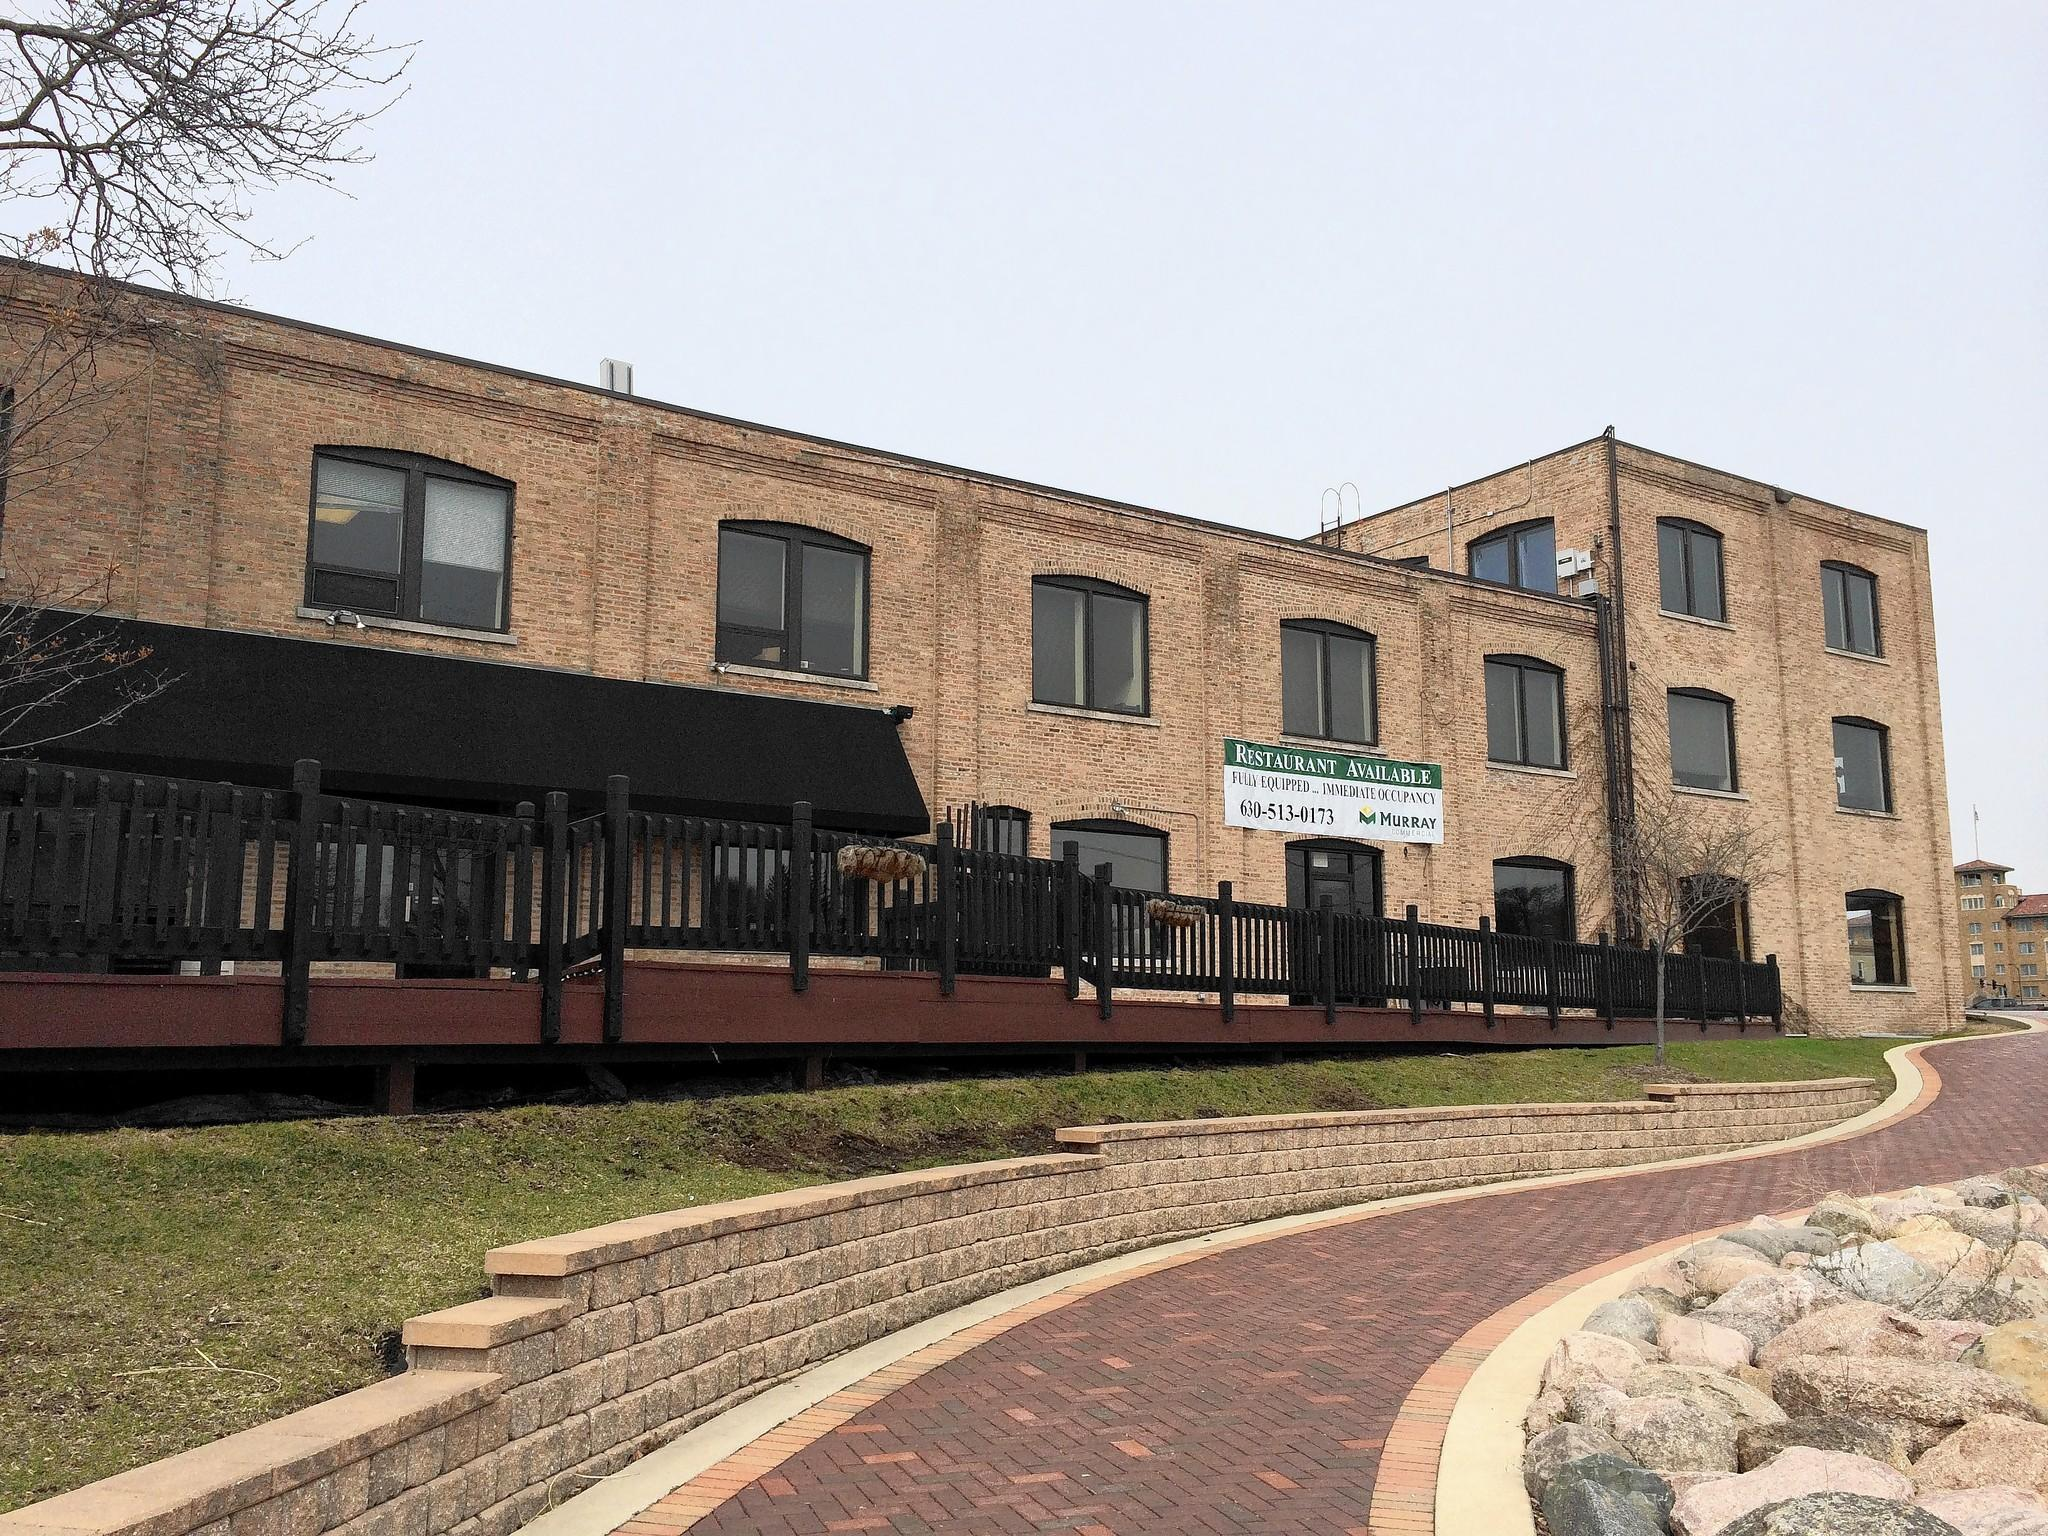 ALE Solutions, Inc., located in the Fox Island Square Building at 1 Illinois St., occupies the entire second and third floors of the building and recently moved into a ground floor unit due to an increase in employees.